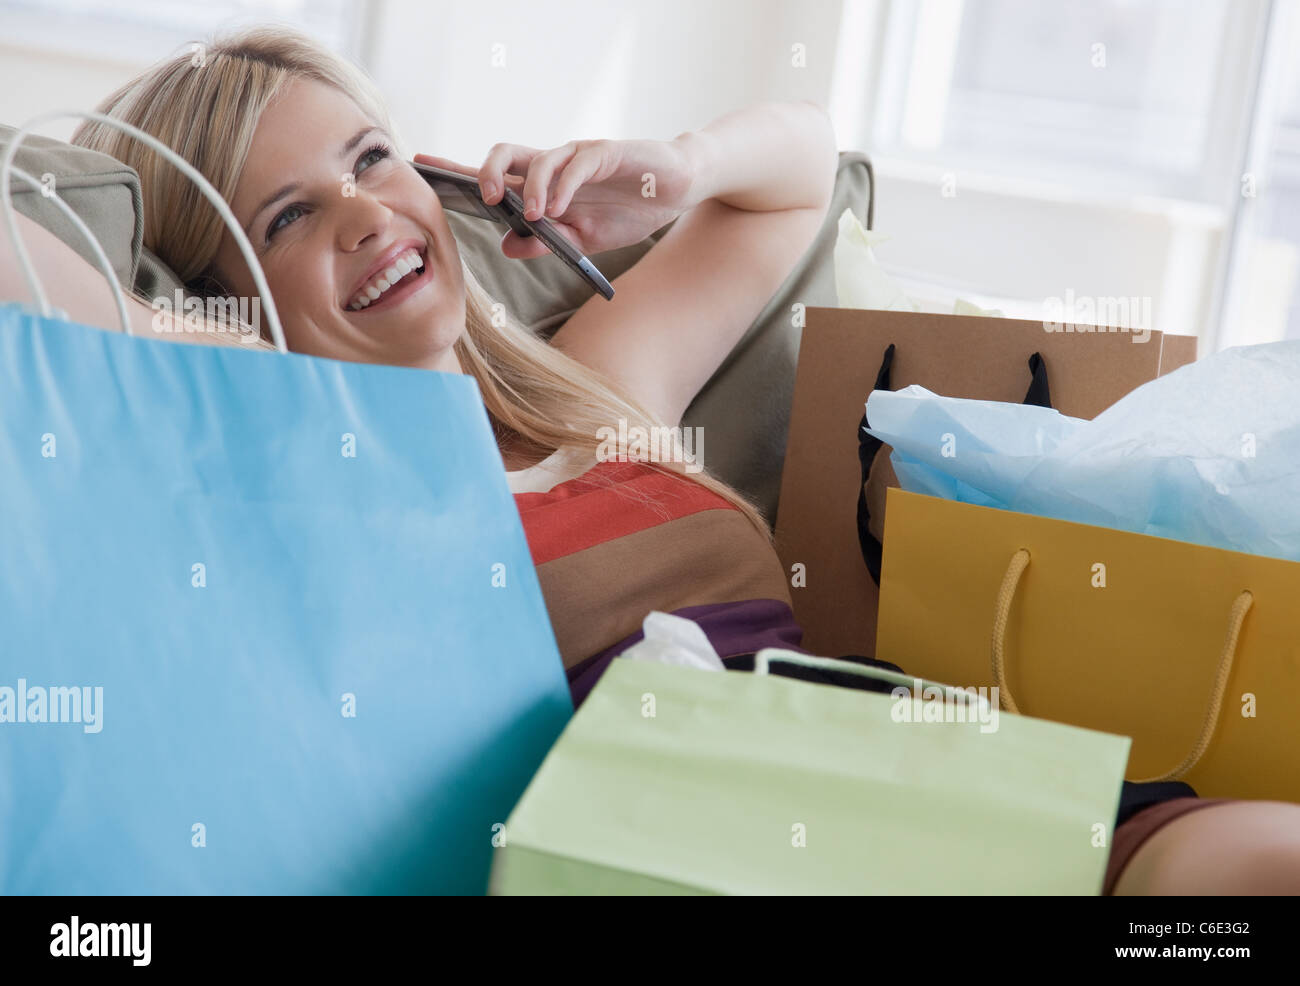 USA, New Jersey, Jersey City, Young woman talking on mobile phone surrounded by shopping bags - Stock Image